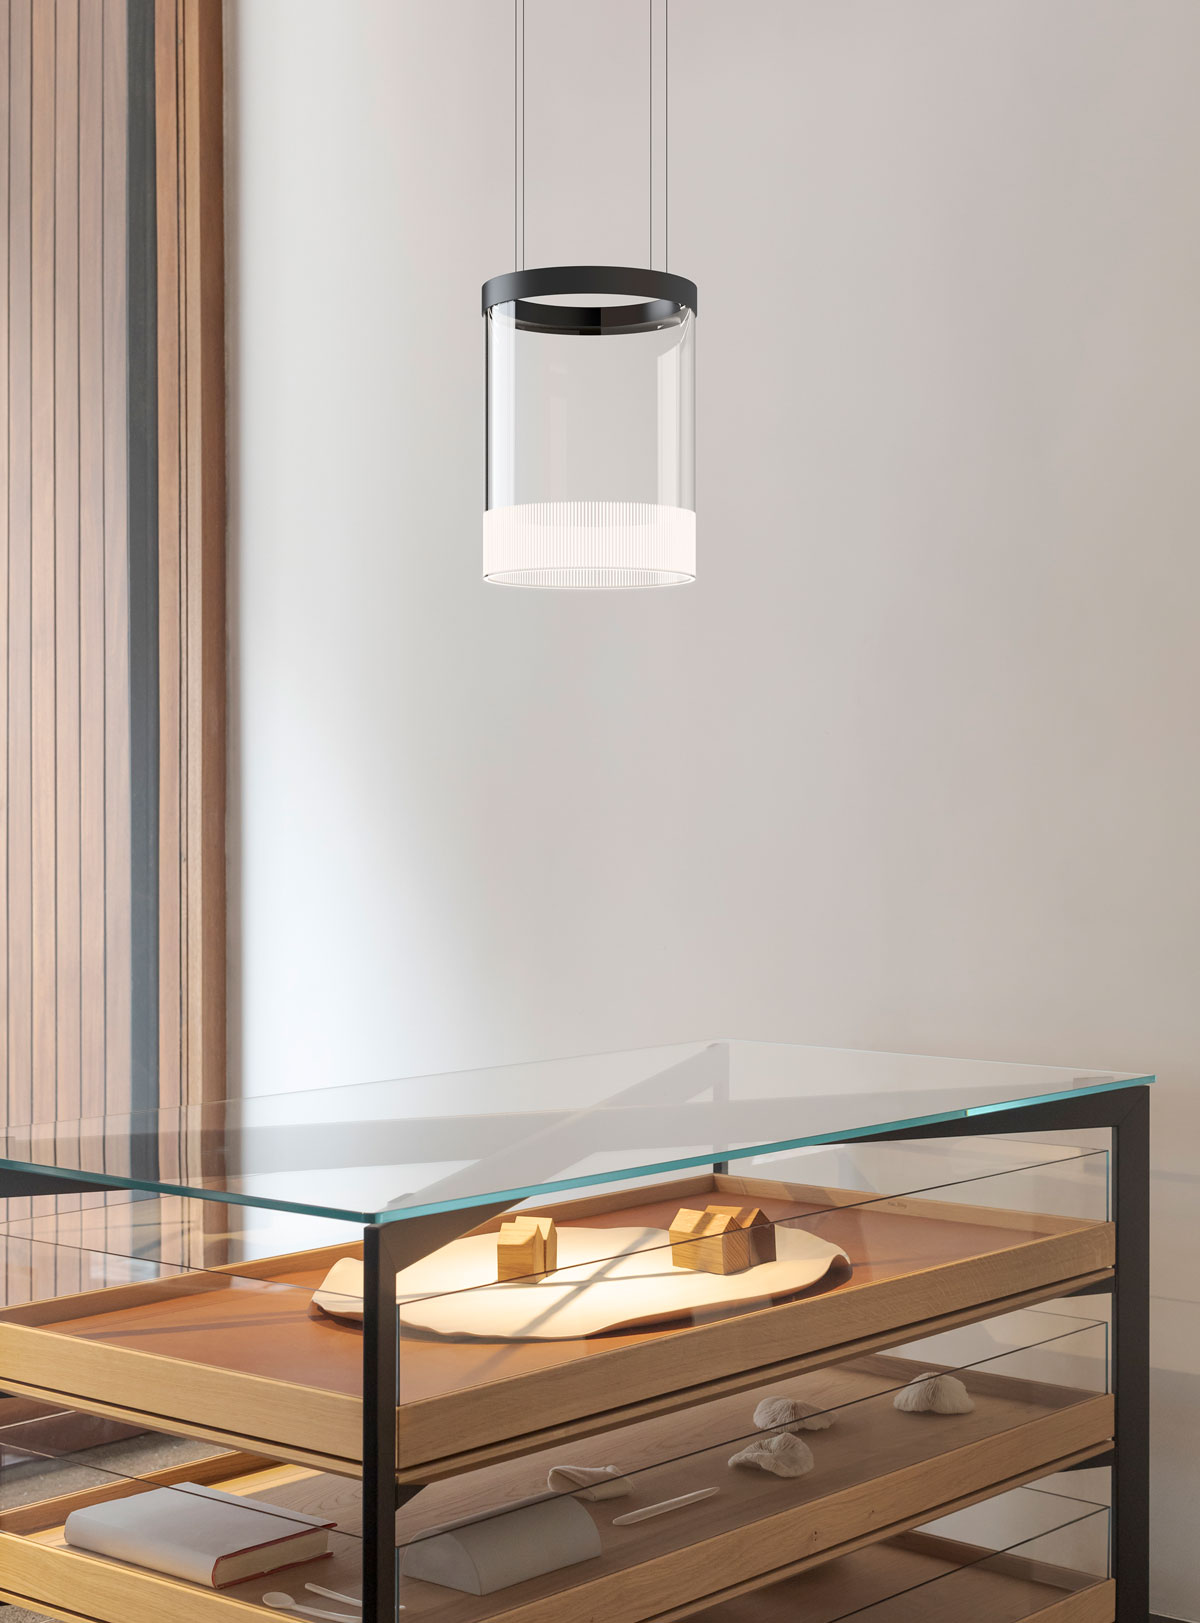 Vibia - The Edit - Guise - Introducing New Models